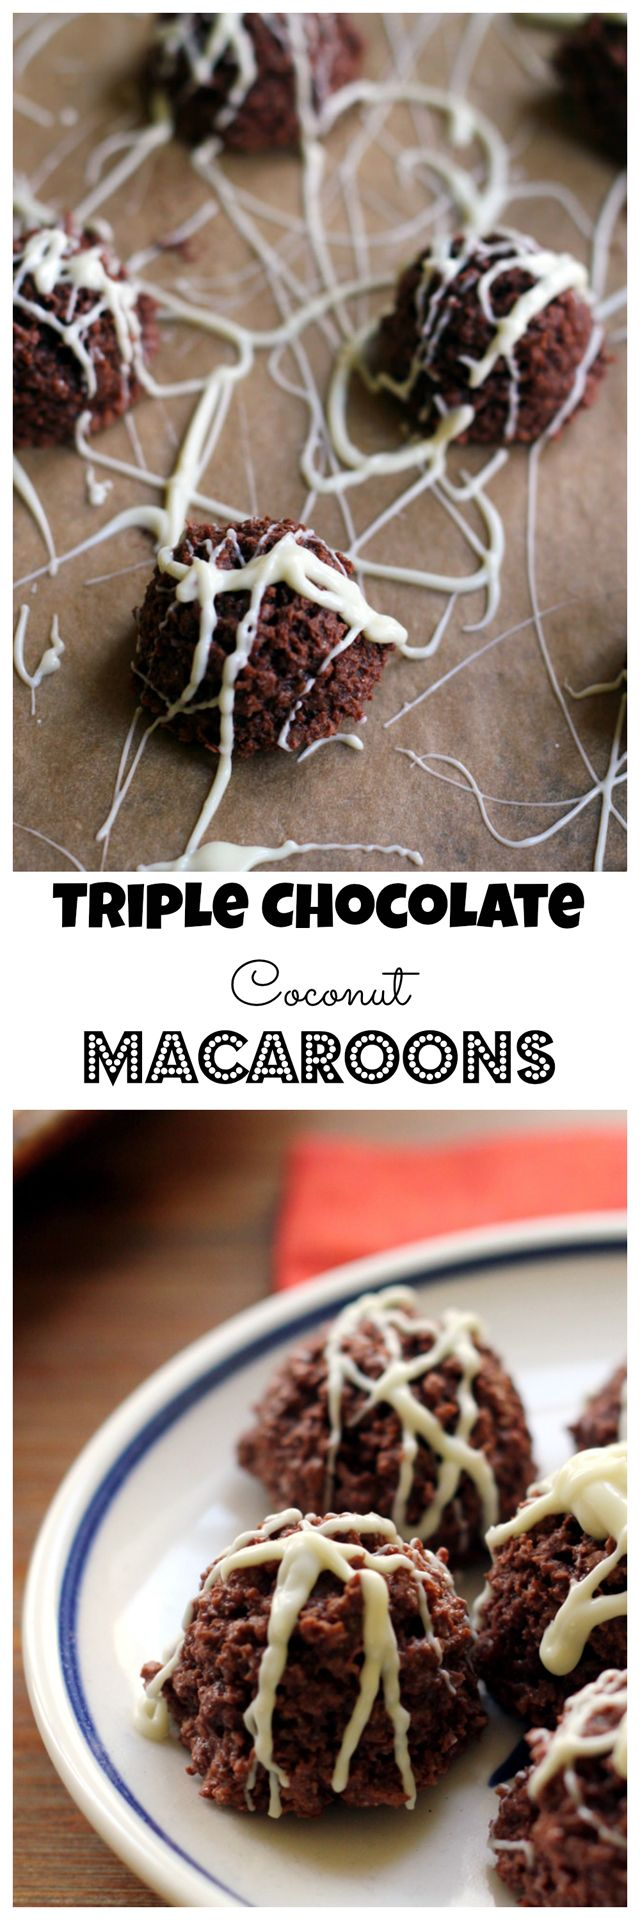 Perfect for Easter or Passover, triple chocolate coconut macaroons are as rich and fudgy as truffles, but possibly even more decadent.